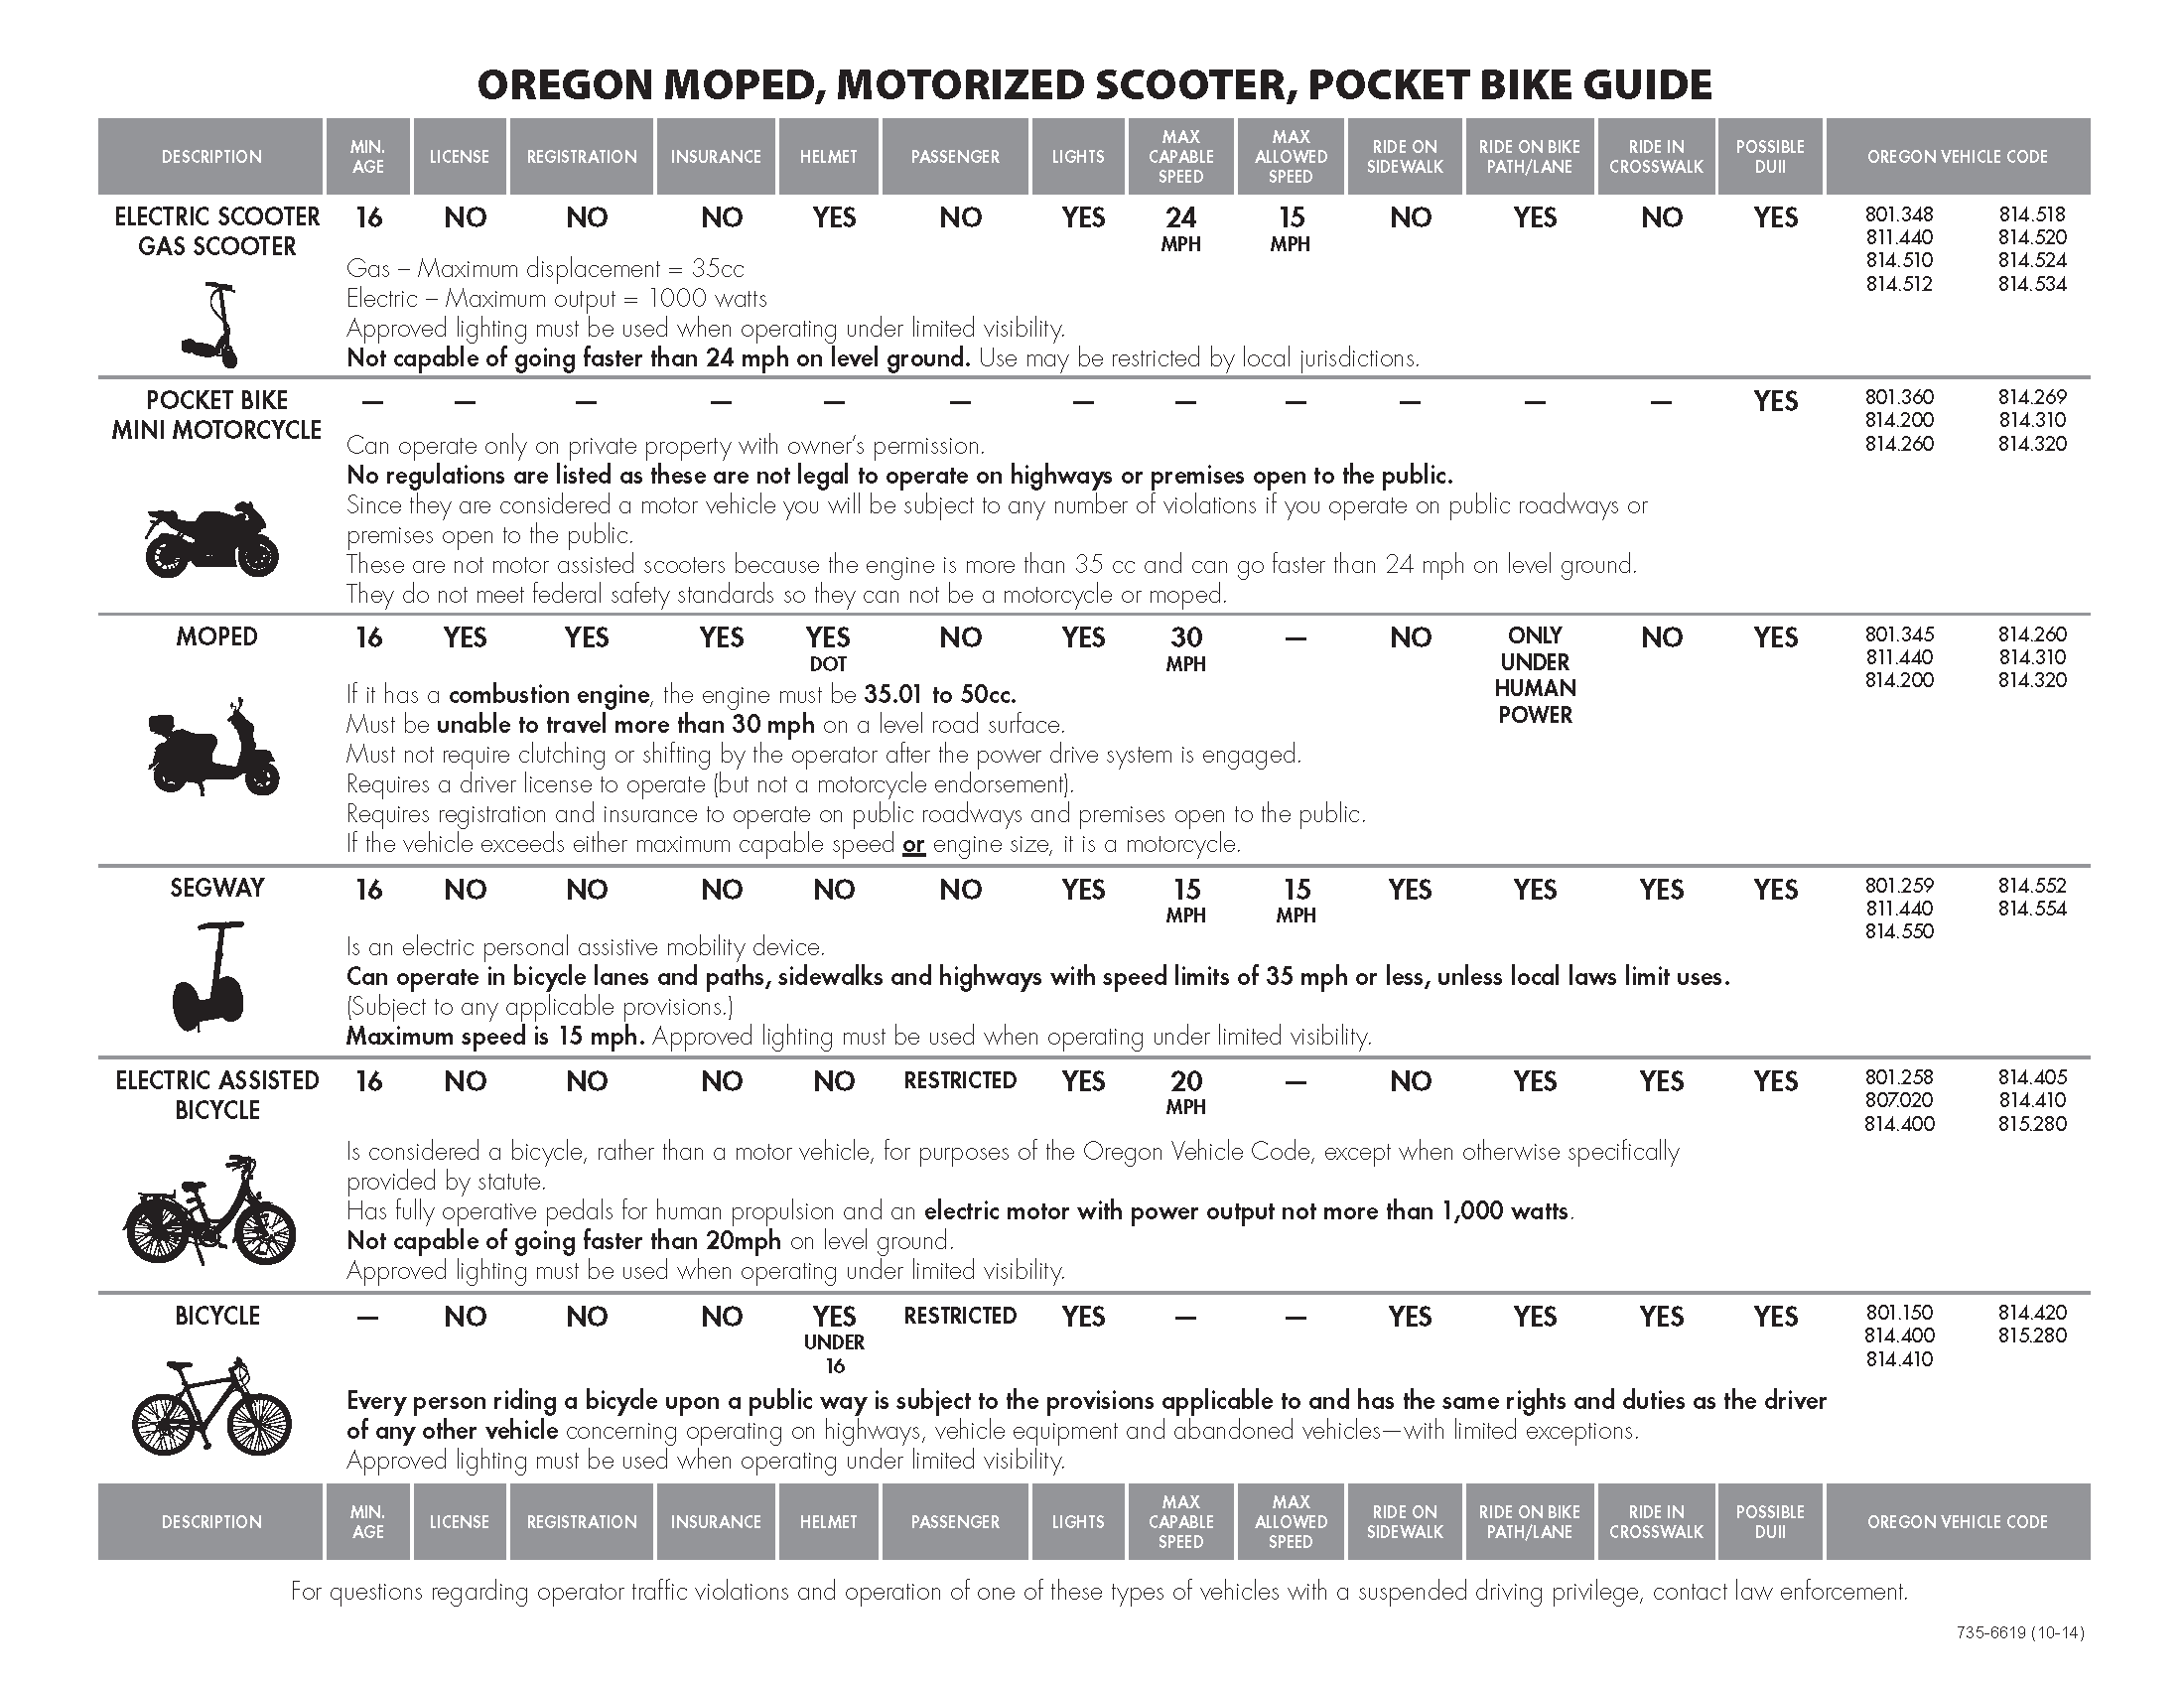 Oregon Moped, Motorized Scooter, Pocket Bike Guide